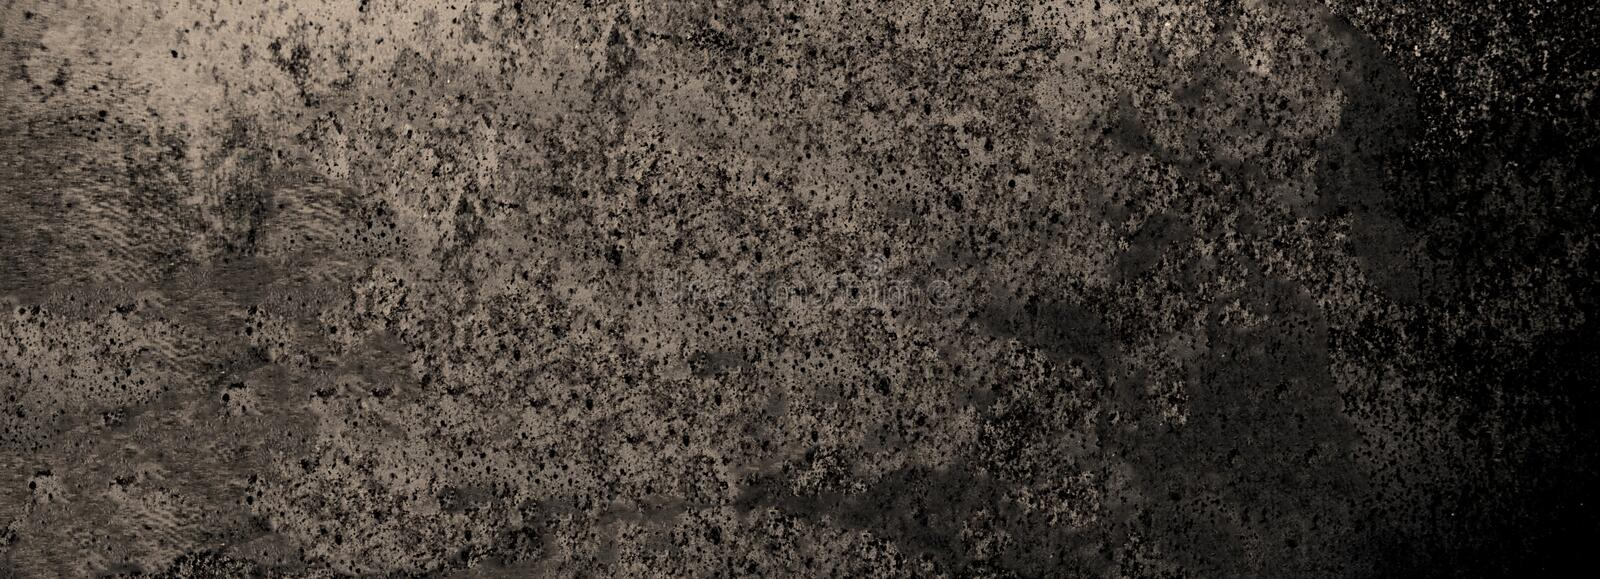 Dark grunge background. Dust Overlay and Distress Background w stock photos